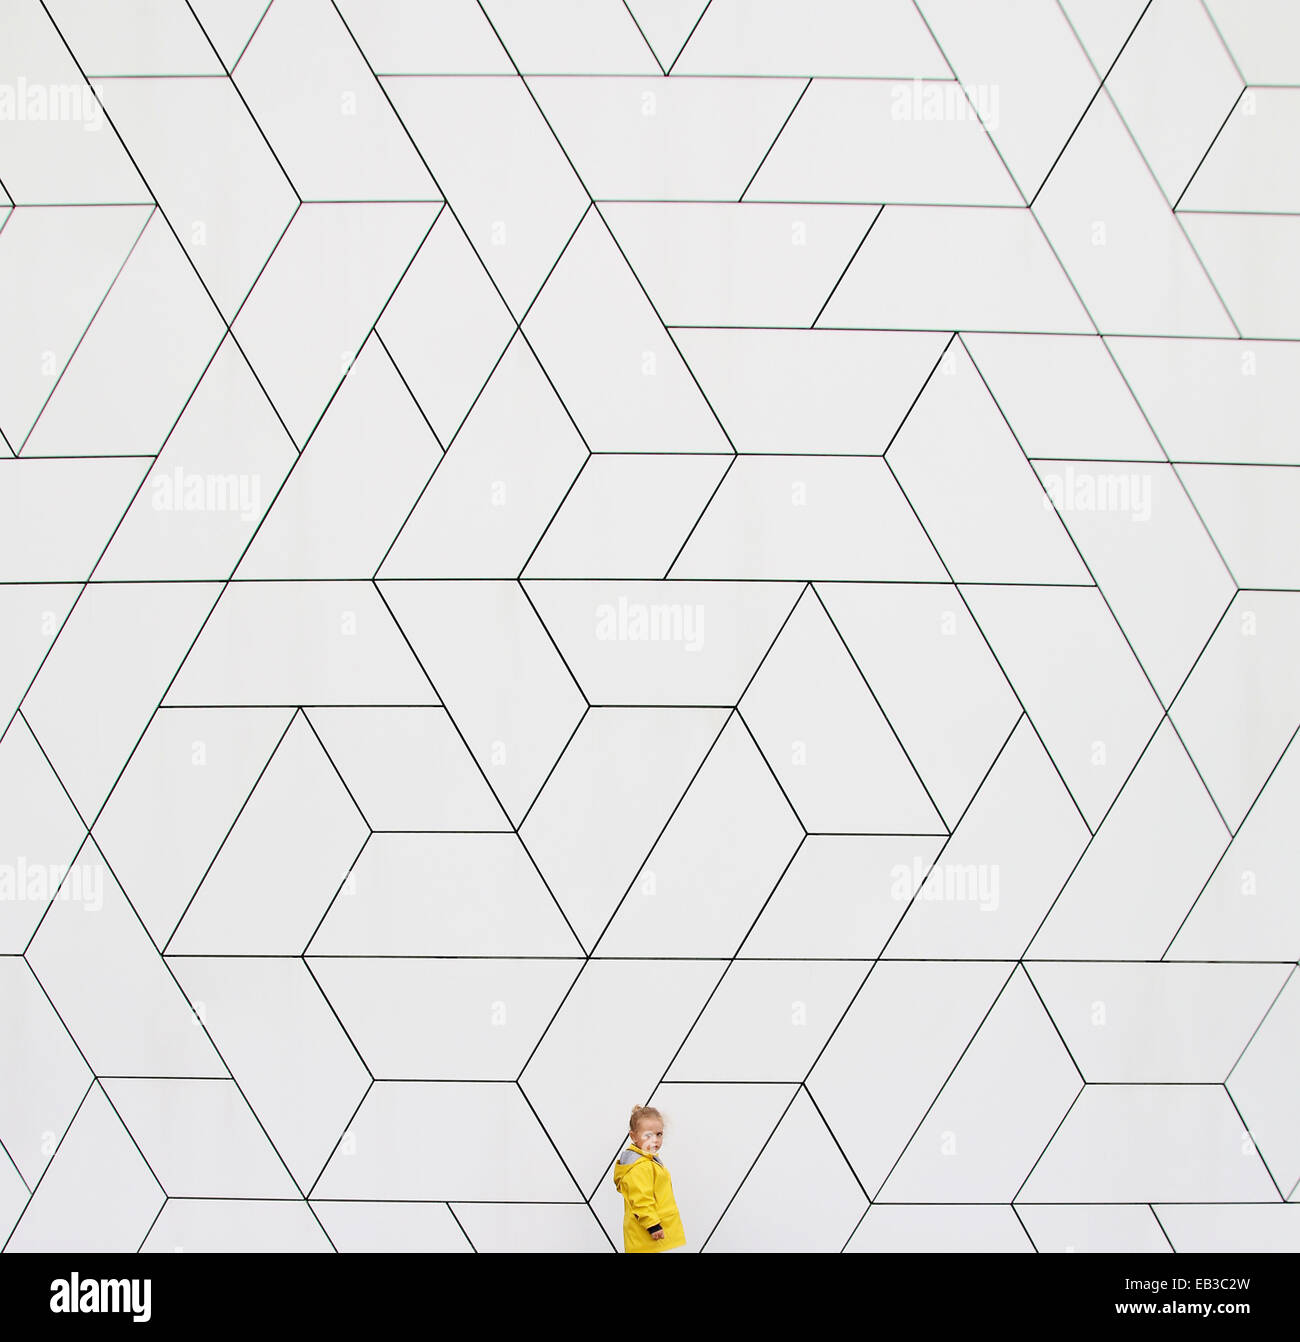 Girl (2-3) in yellow raincoat against white wall - Stock Image